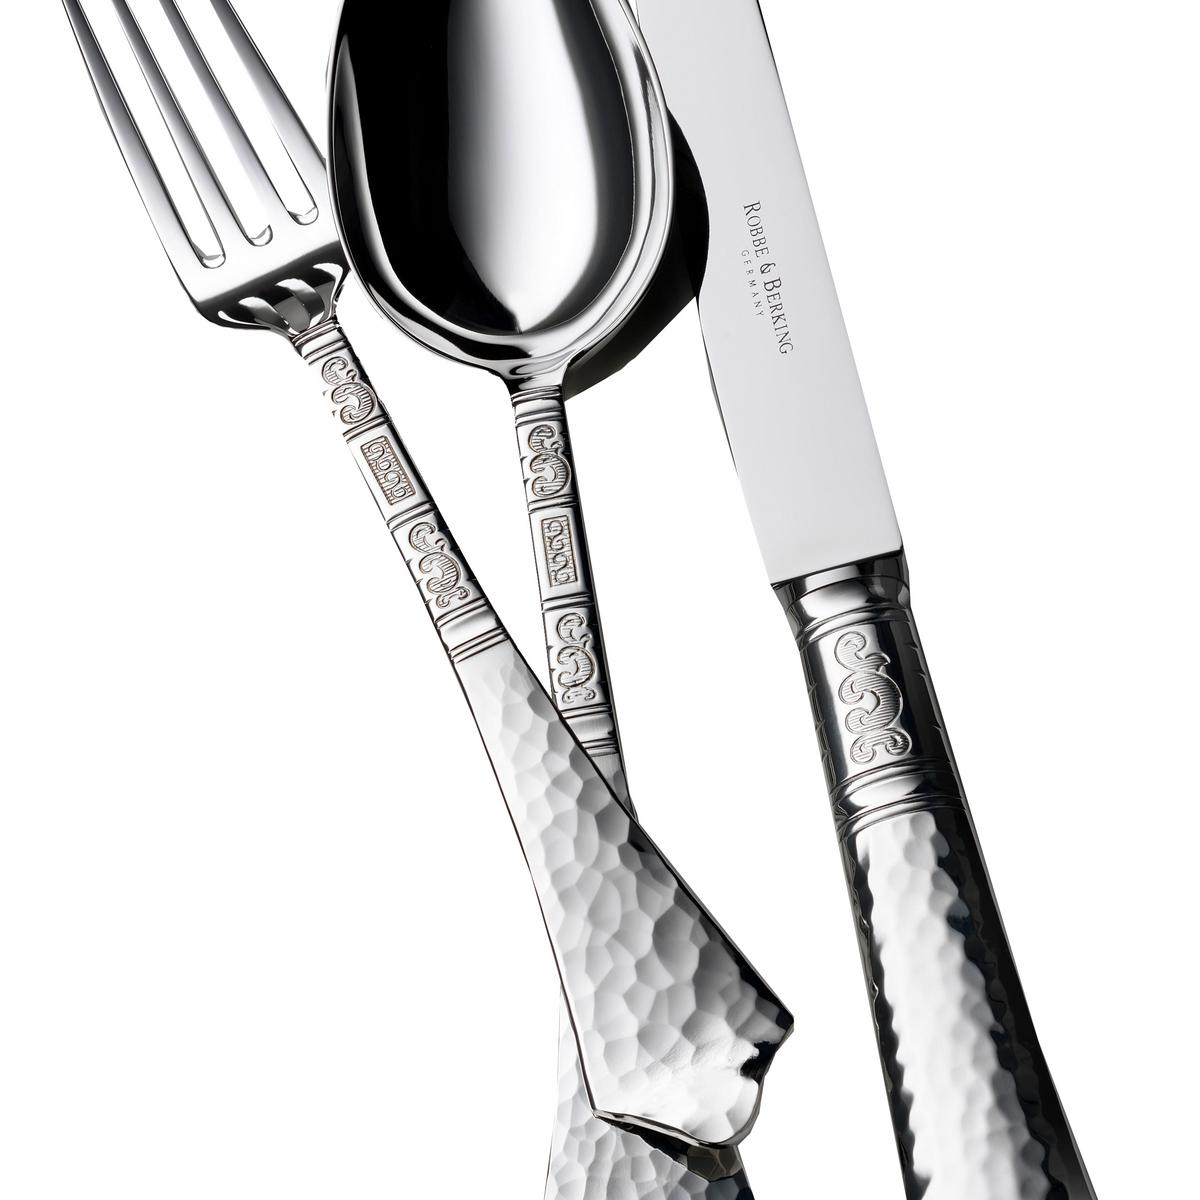 robbe berking hermitage cutlery silverplated. Black Bedroom Furniture Sets. Home Design Ideas